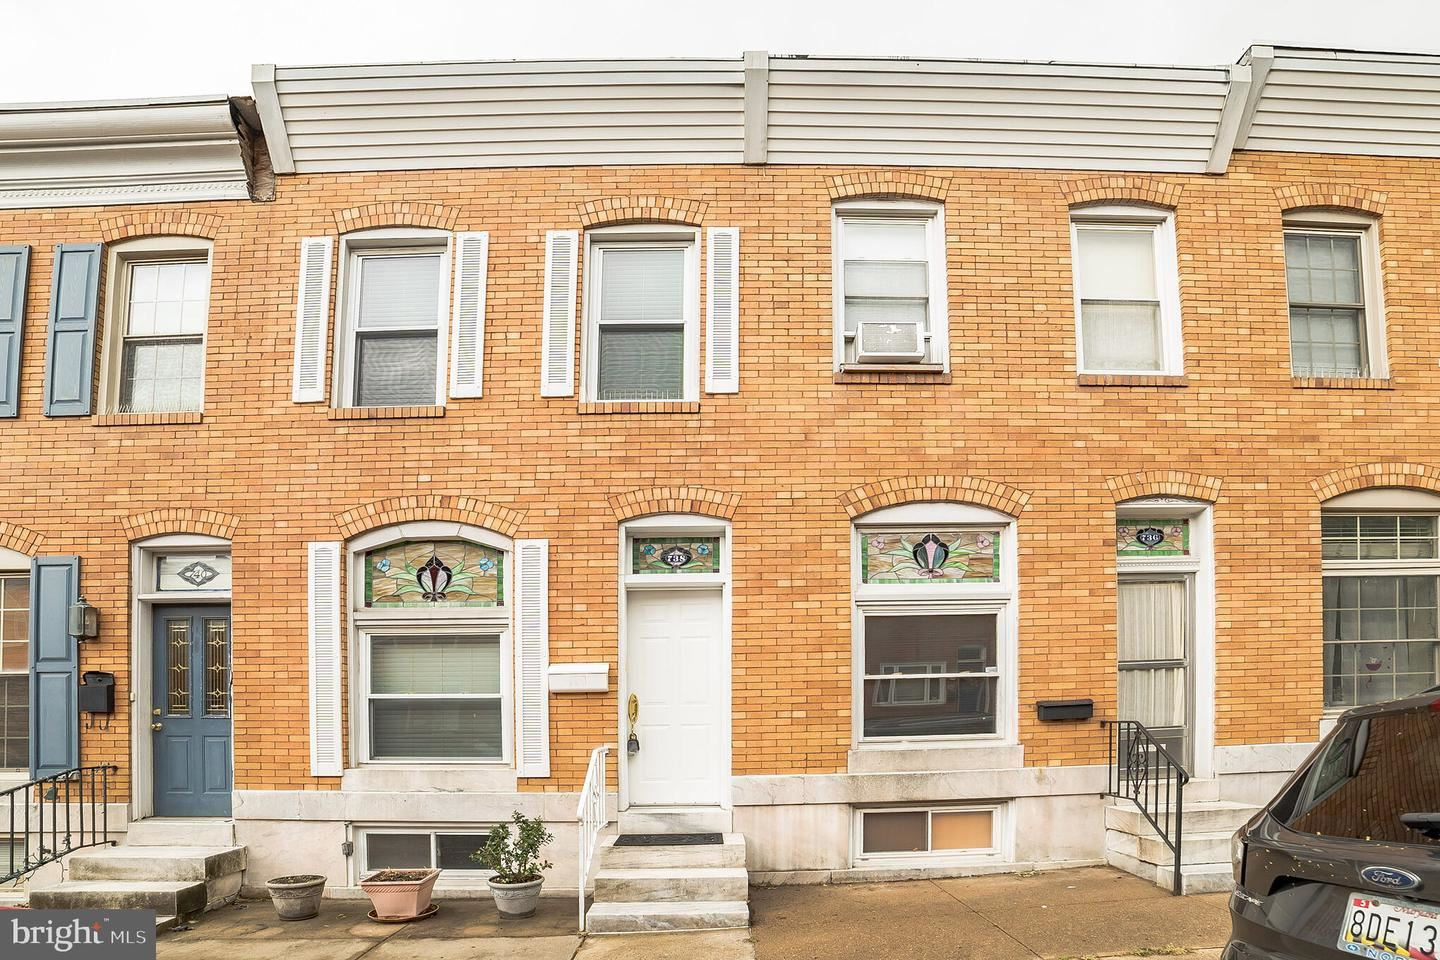 738 S CURLEY ST, Baltimore, MD 21224 - MLS#: MDBA549670